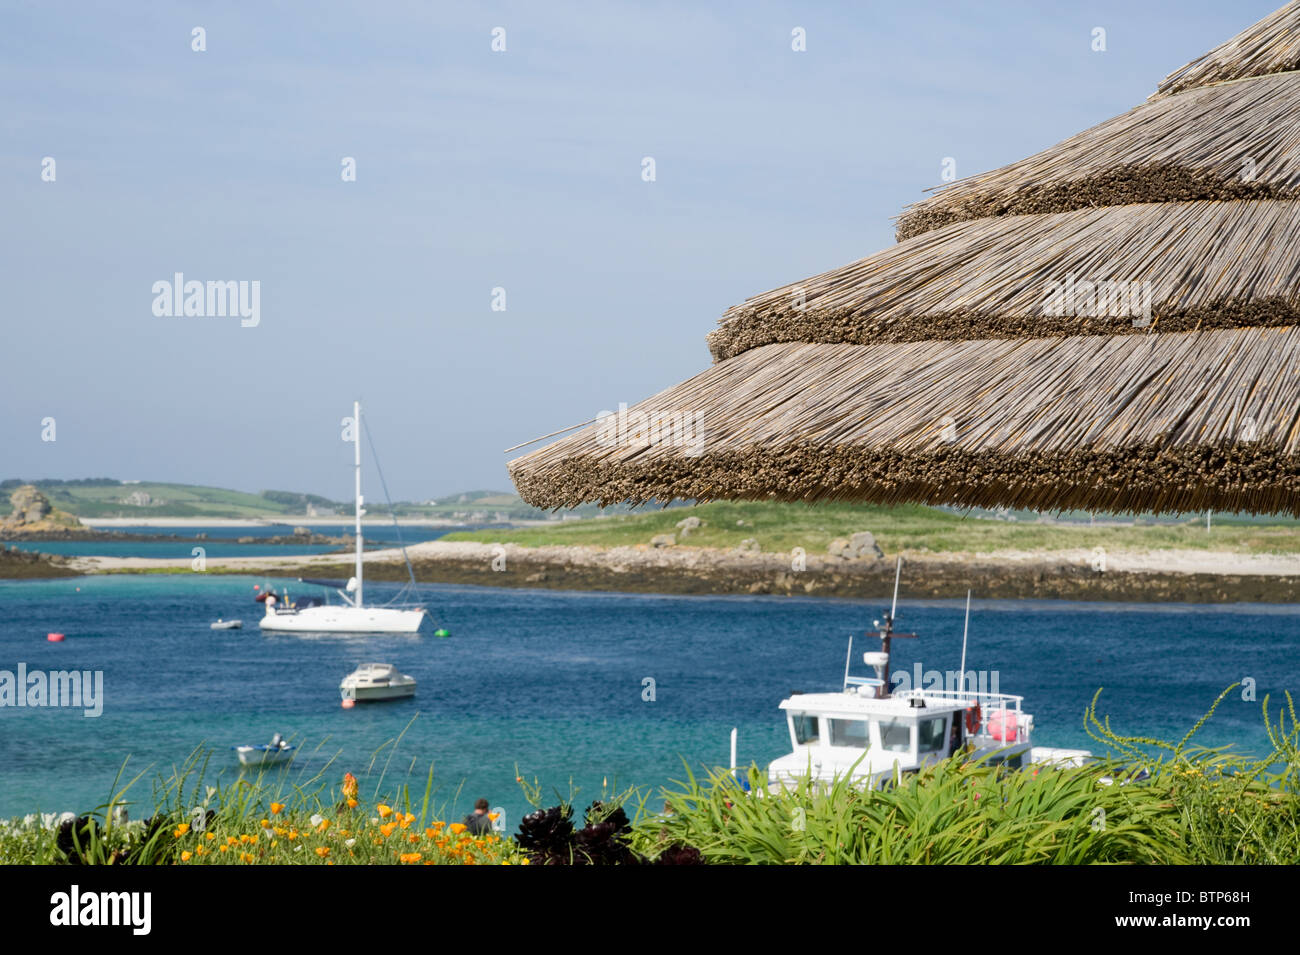 St. Martin's, Isles of Scilly, UK. - Stock Image